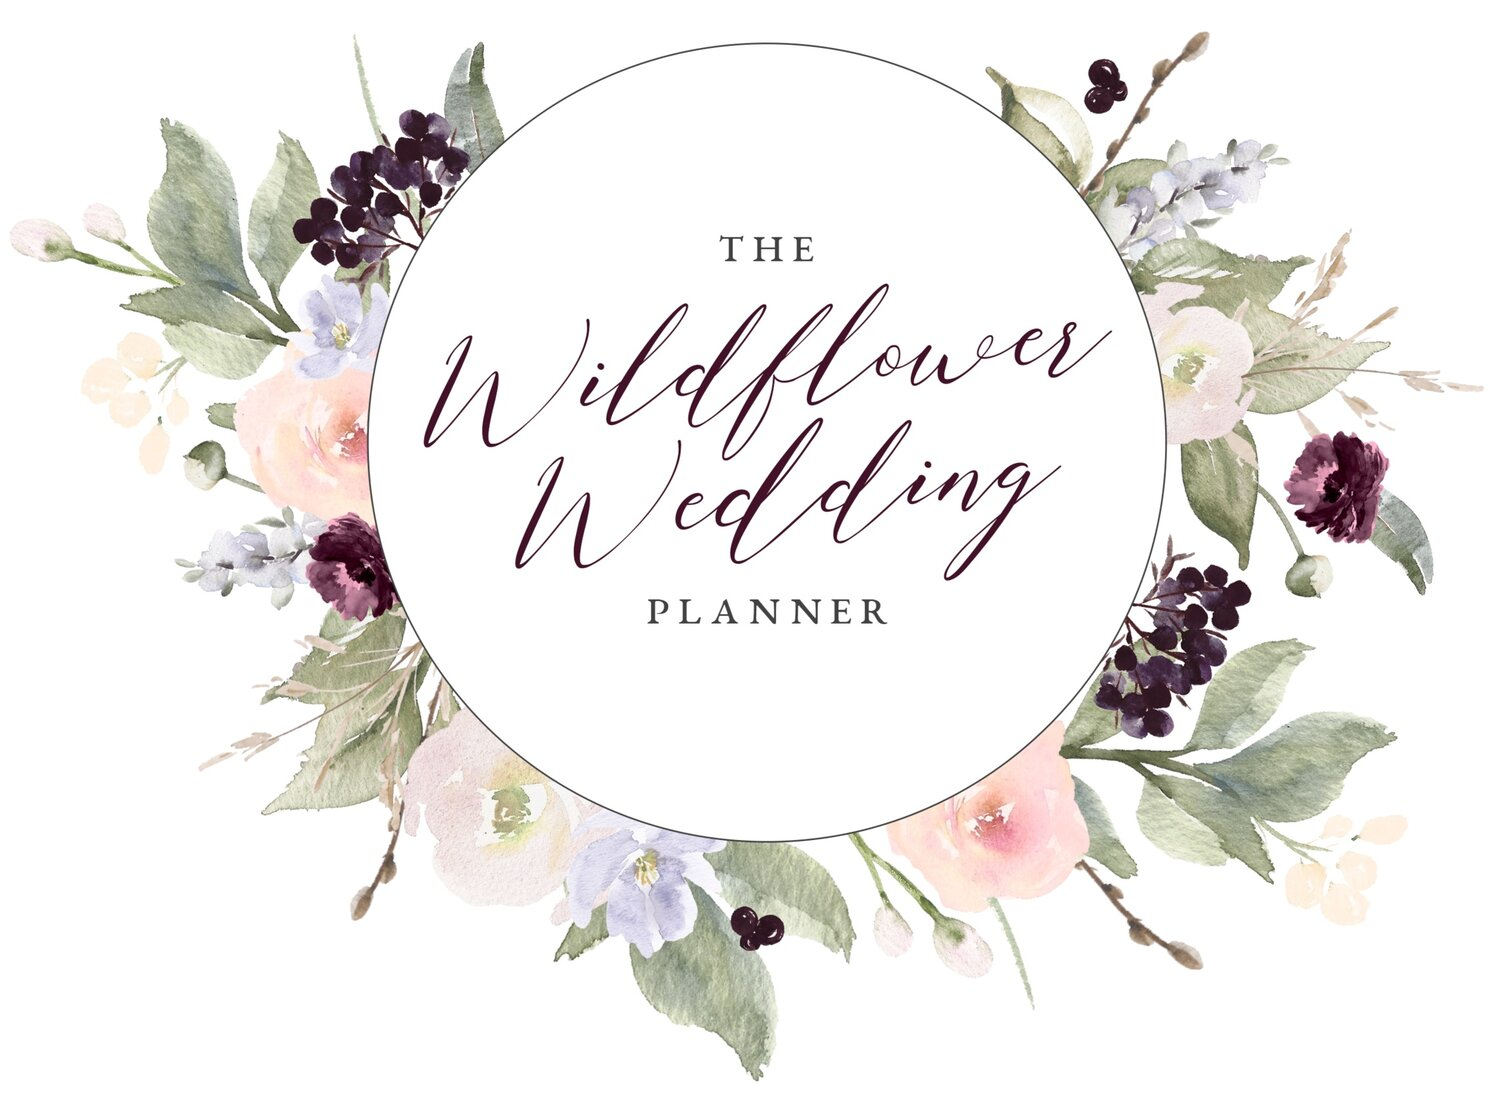 The Wildflower Wedding Planner | Relaxed, romantic and heartfelt weddings